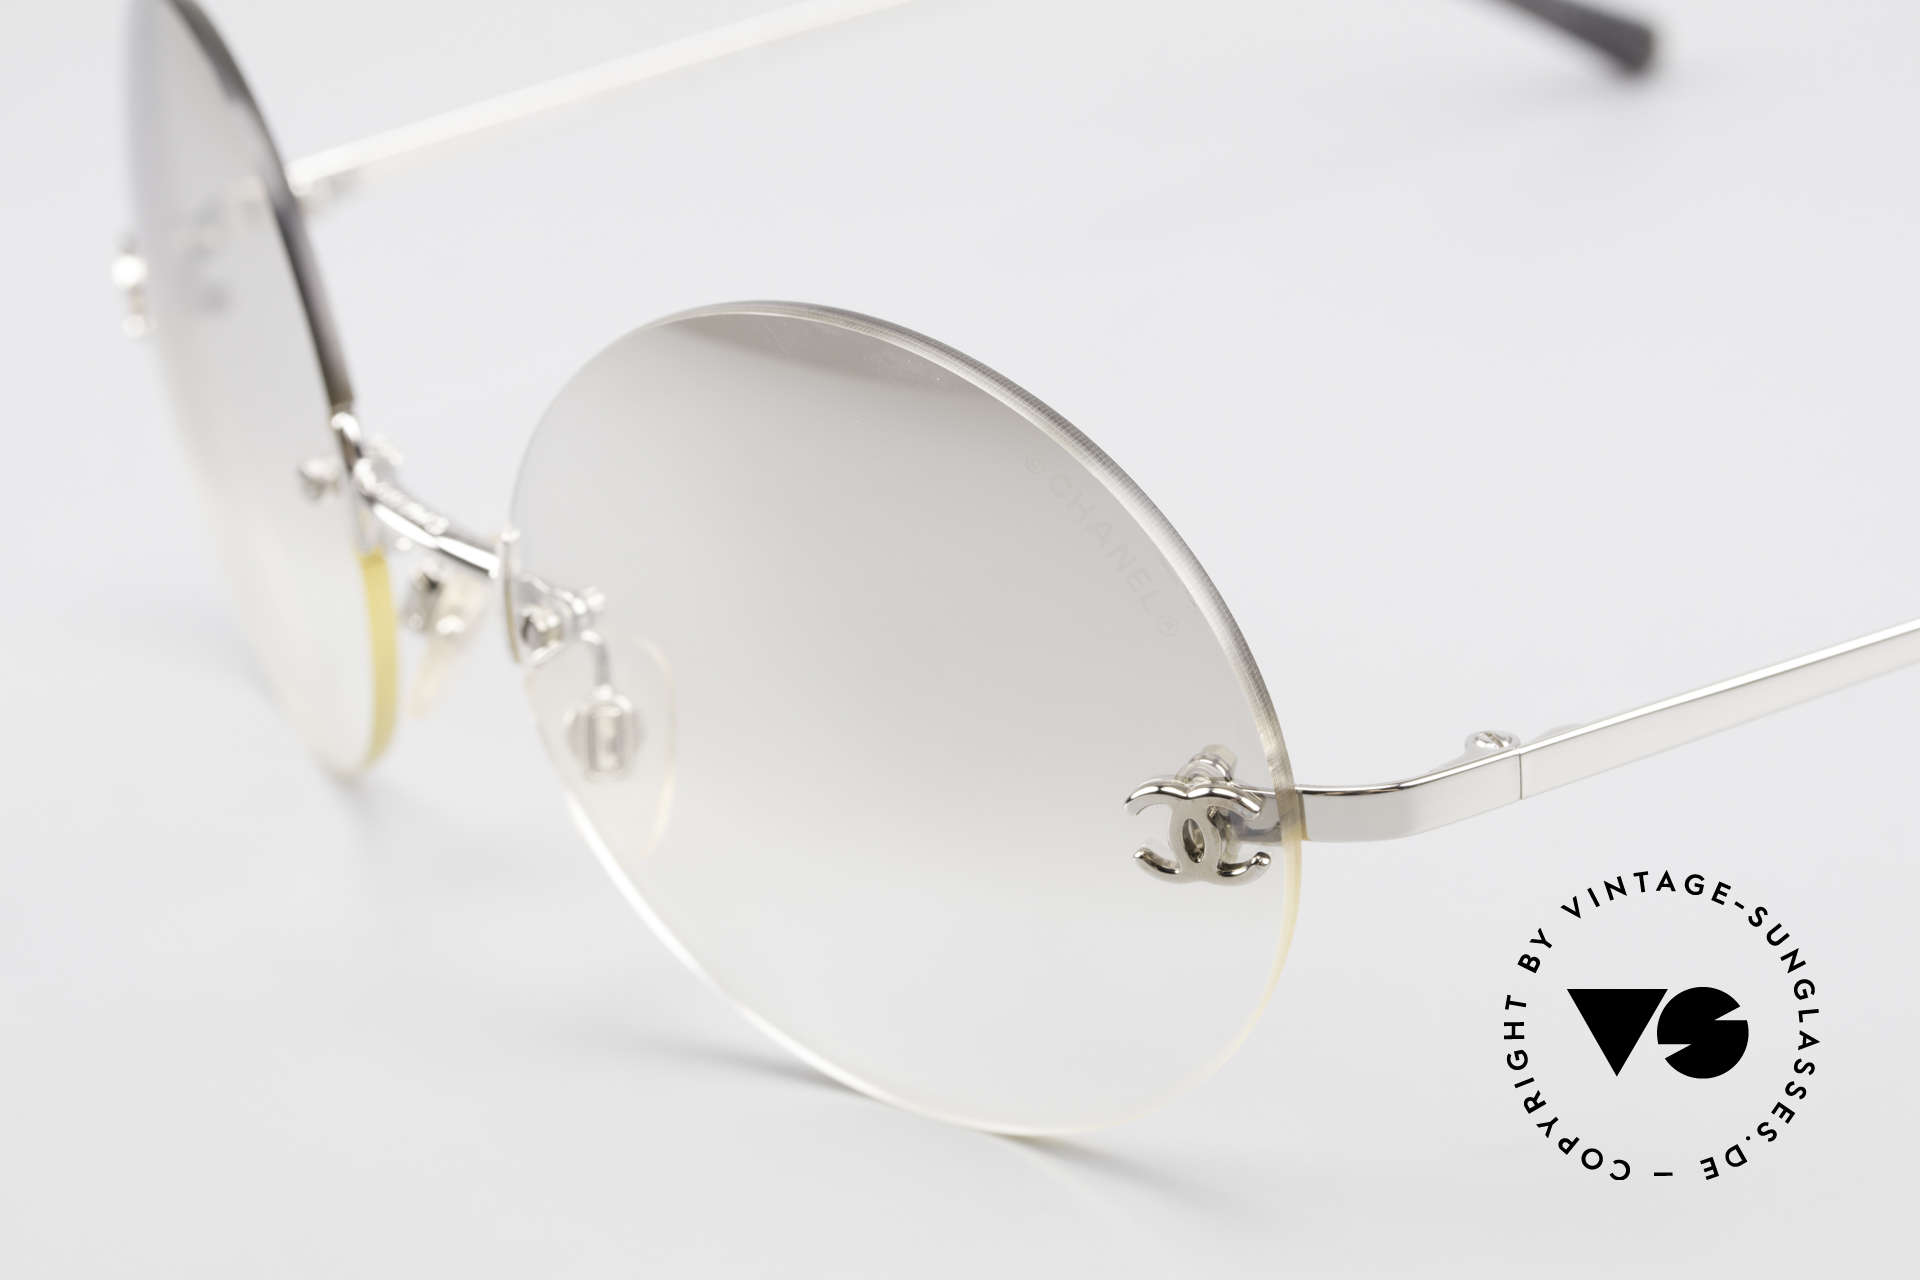 Chanel 4056 Round Luxury Sunglasses 90's, light tinted nonreflecting lenses; also wearable at night, Made for Men and Women